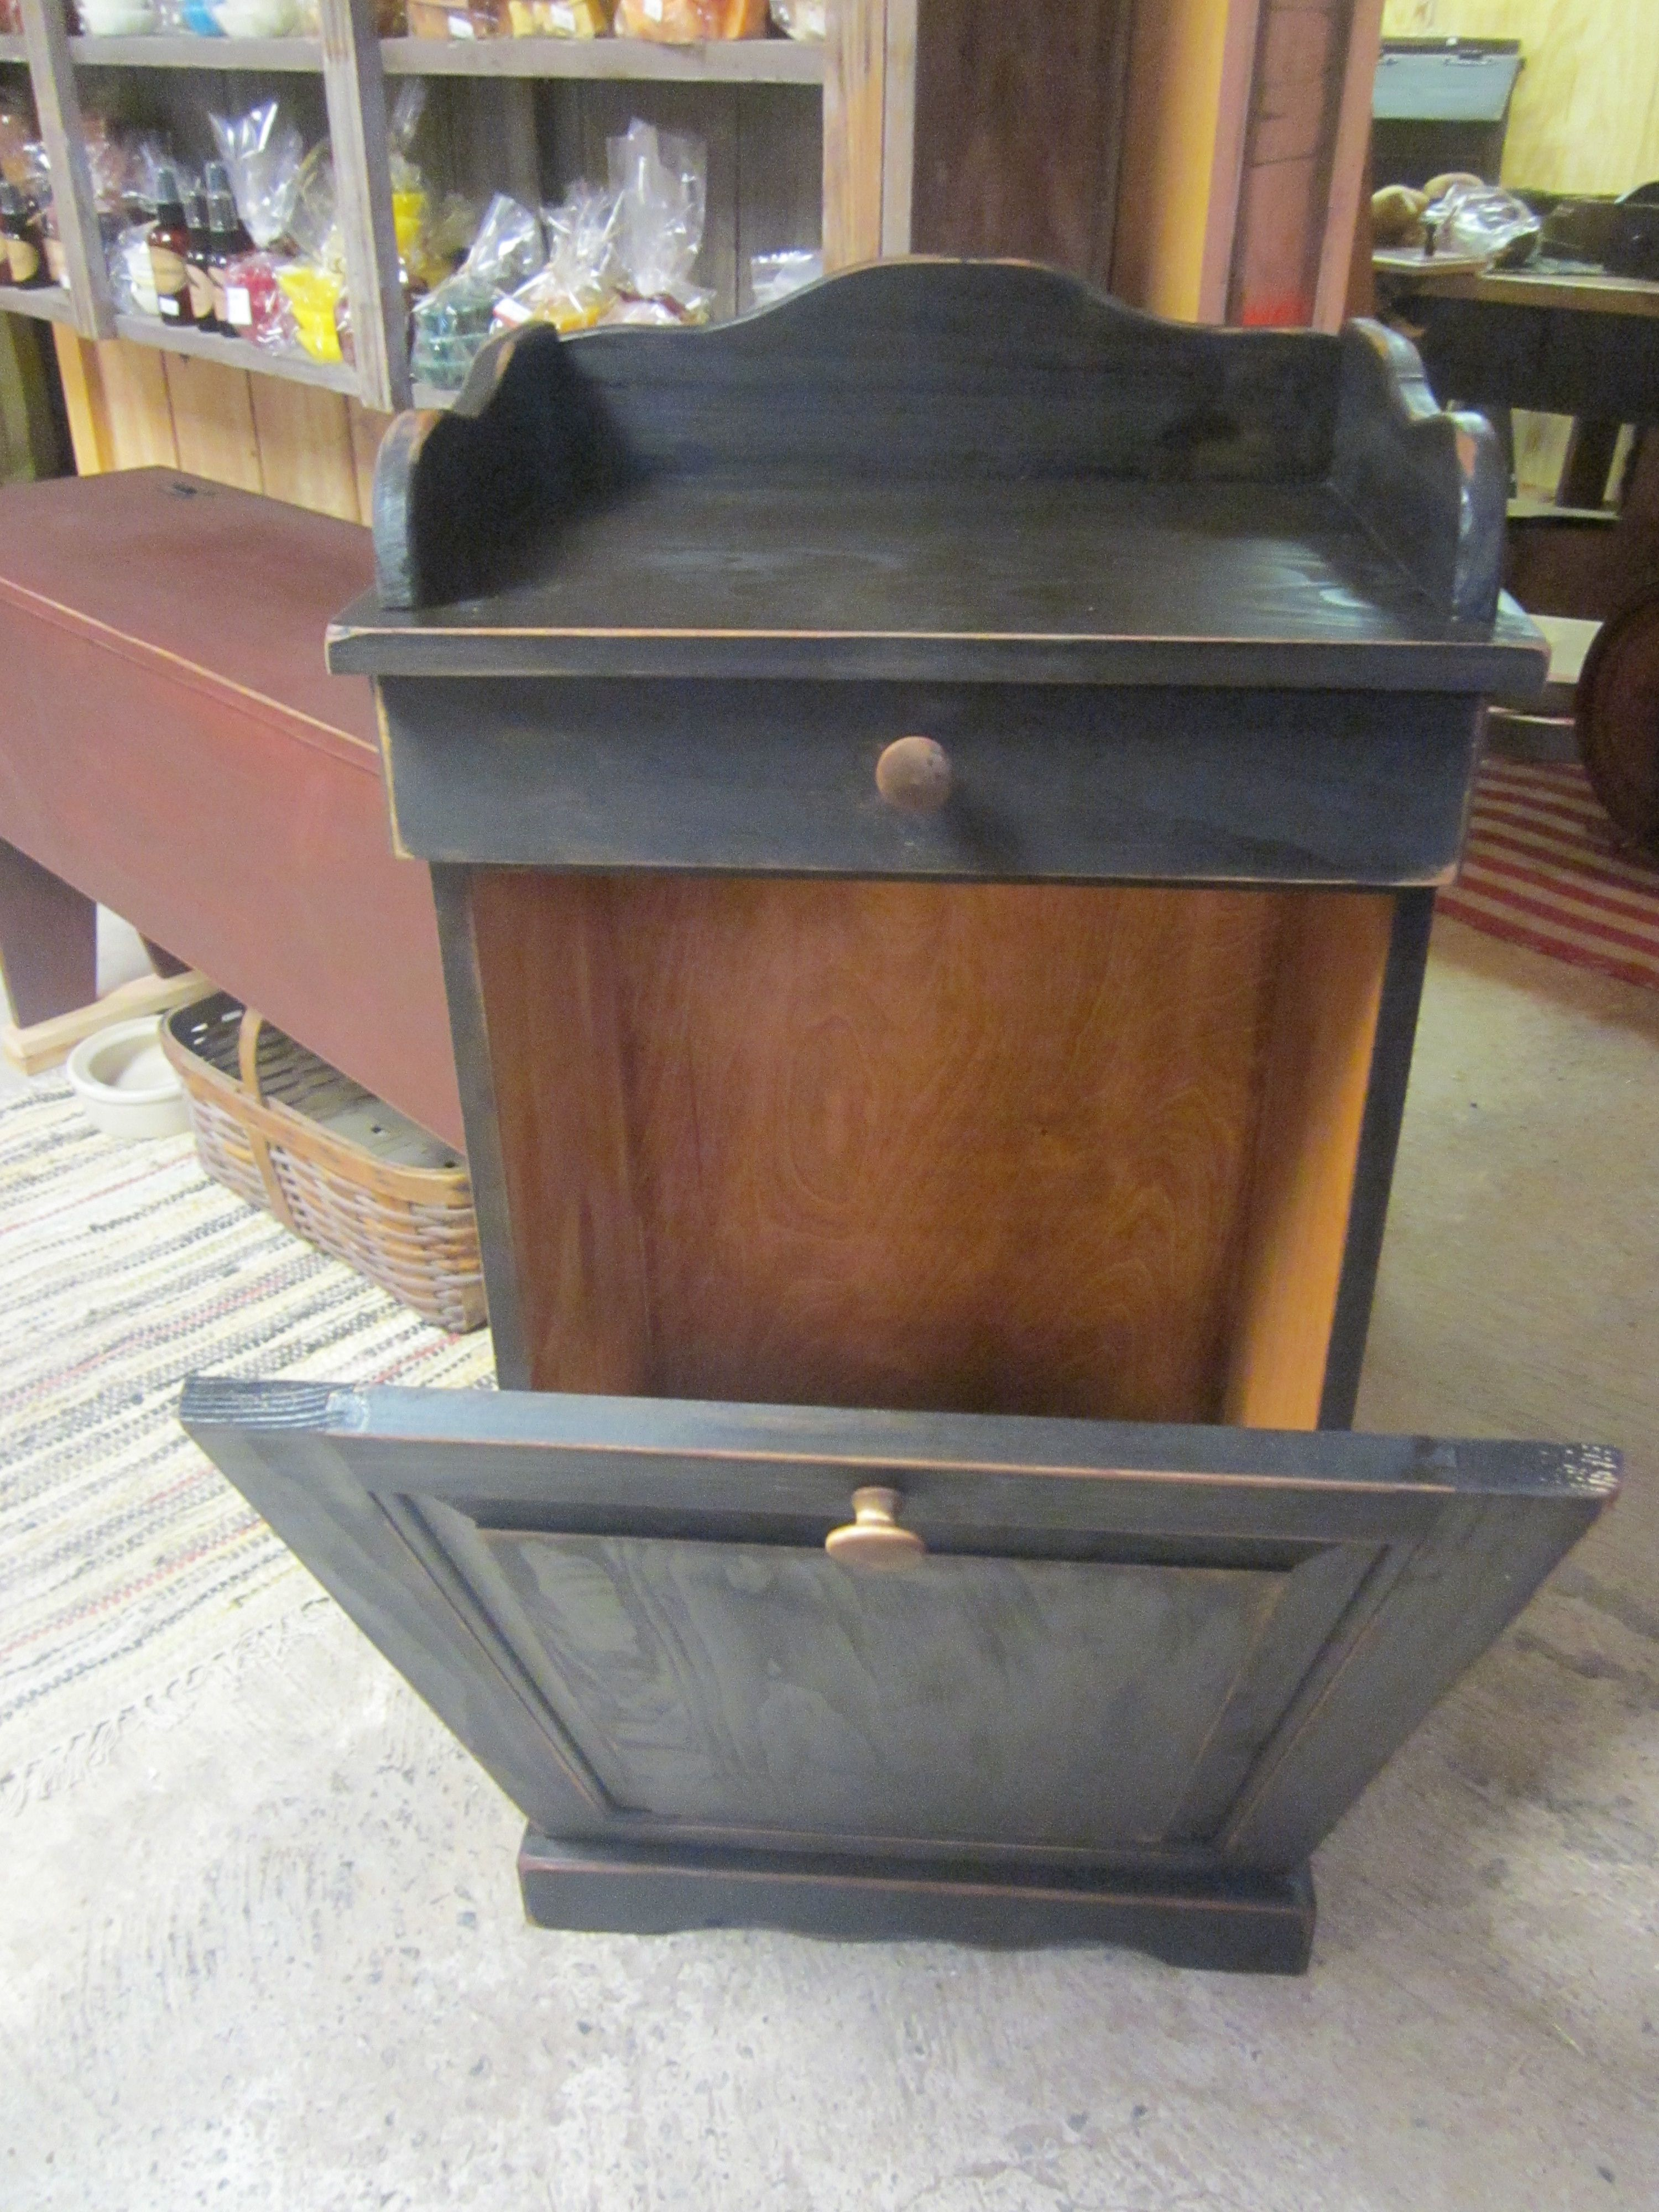 Black Primitive Garbage Can Holder With Drawer Wooden